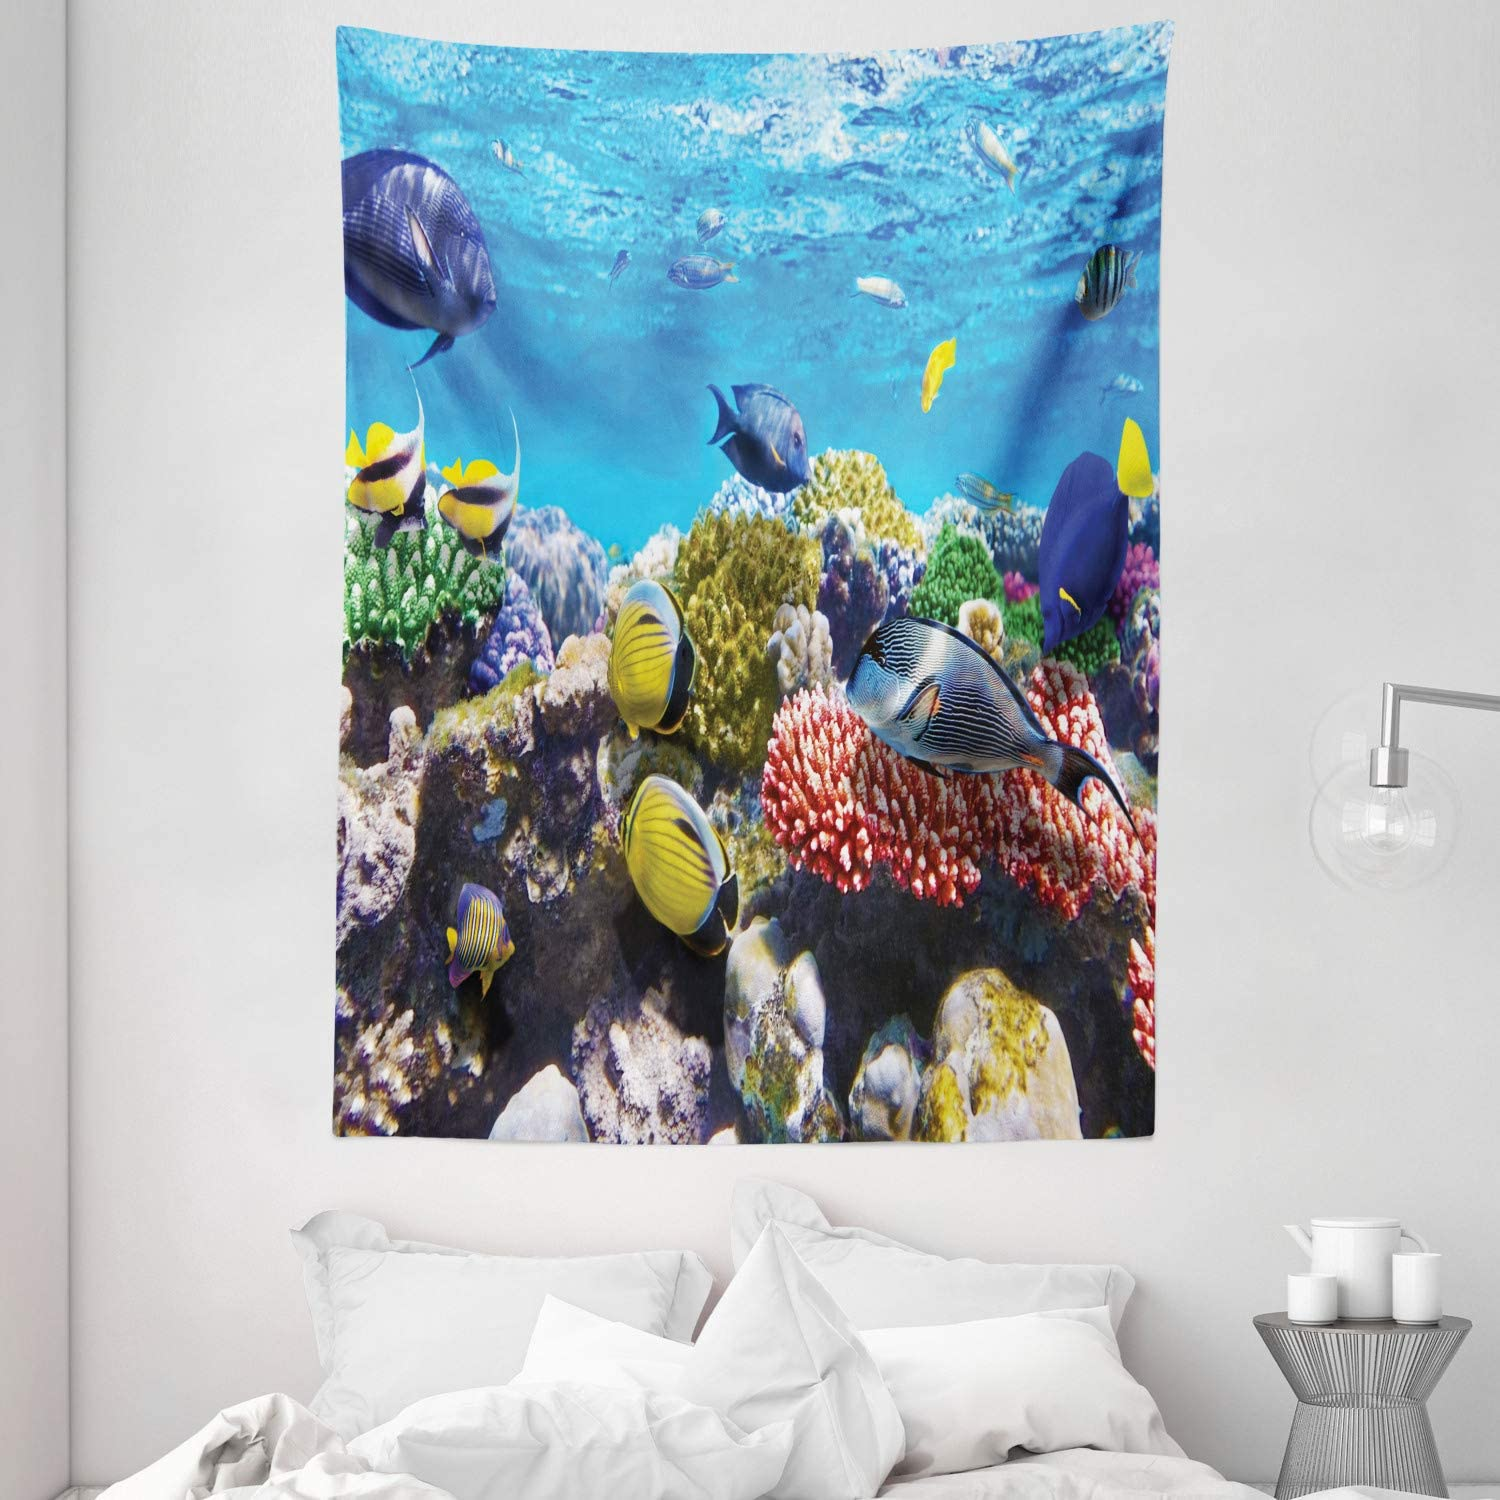 "Ambesonne Ocean Tapestry, Tropical Corals Fish School Natural Life in Shallow Underwater Marine Seascape Image, Wall Hanging for Bedroom Living Room Dorm, 60"" X 80"", Multicolor"